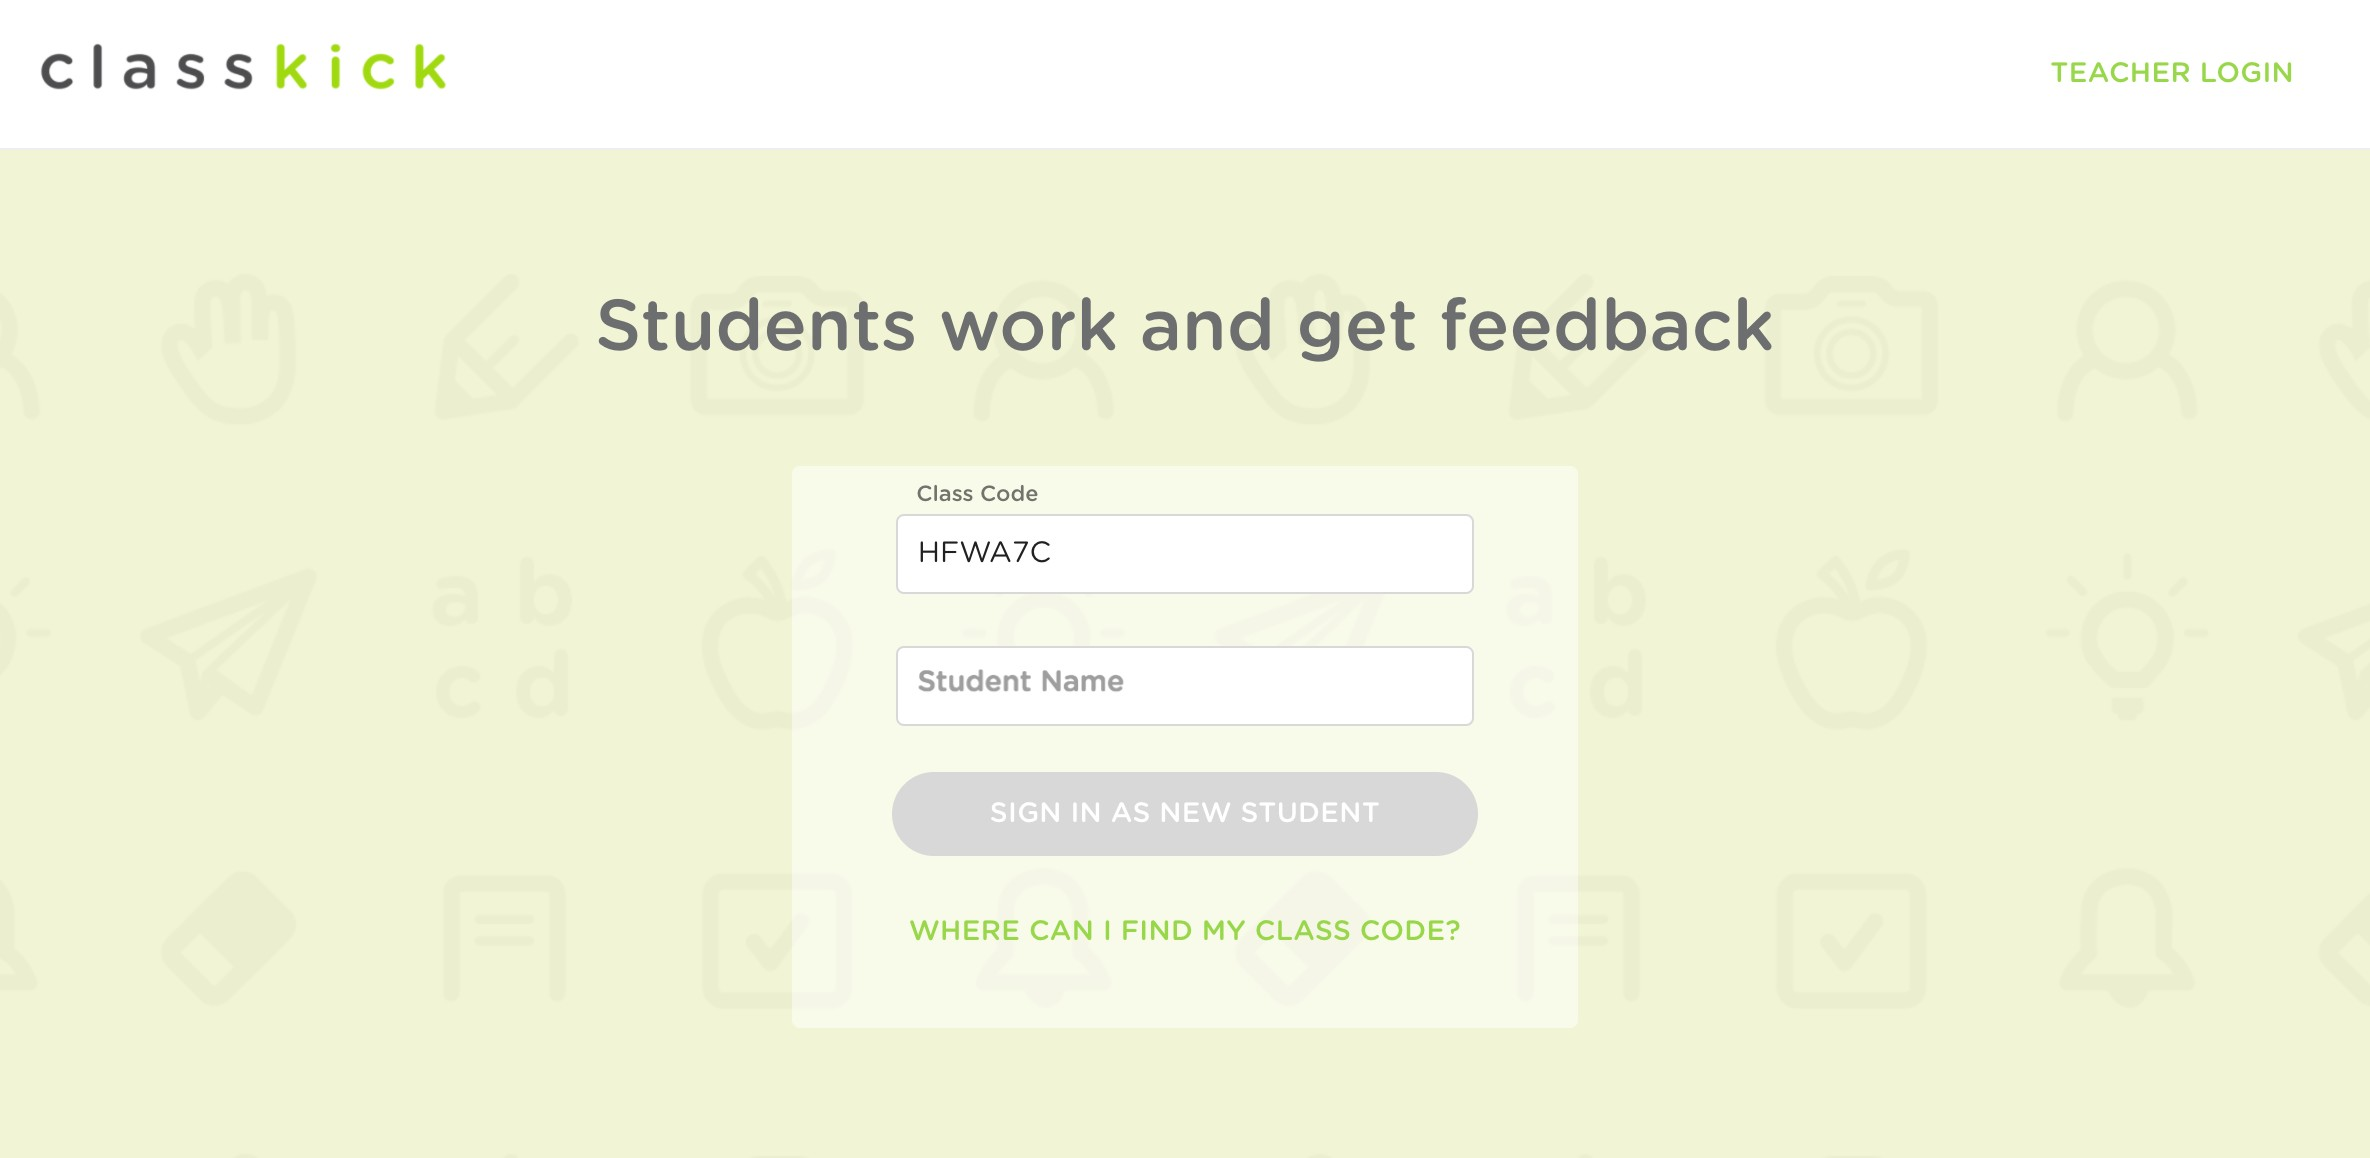 classkick student login page with class code filled in